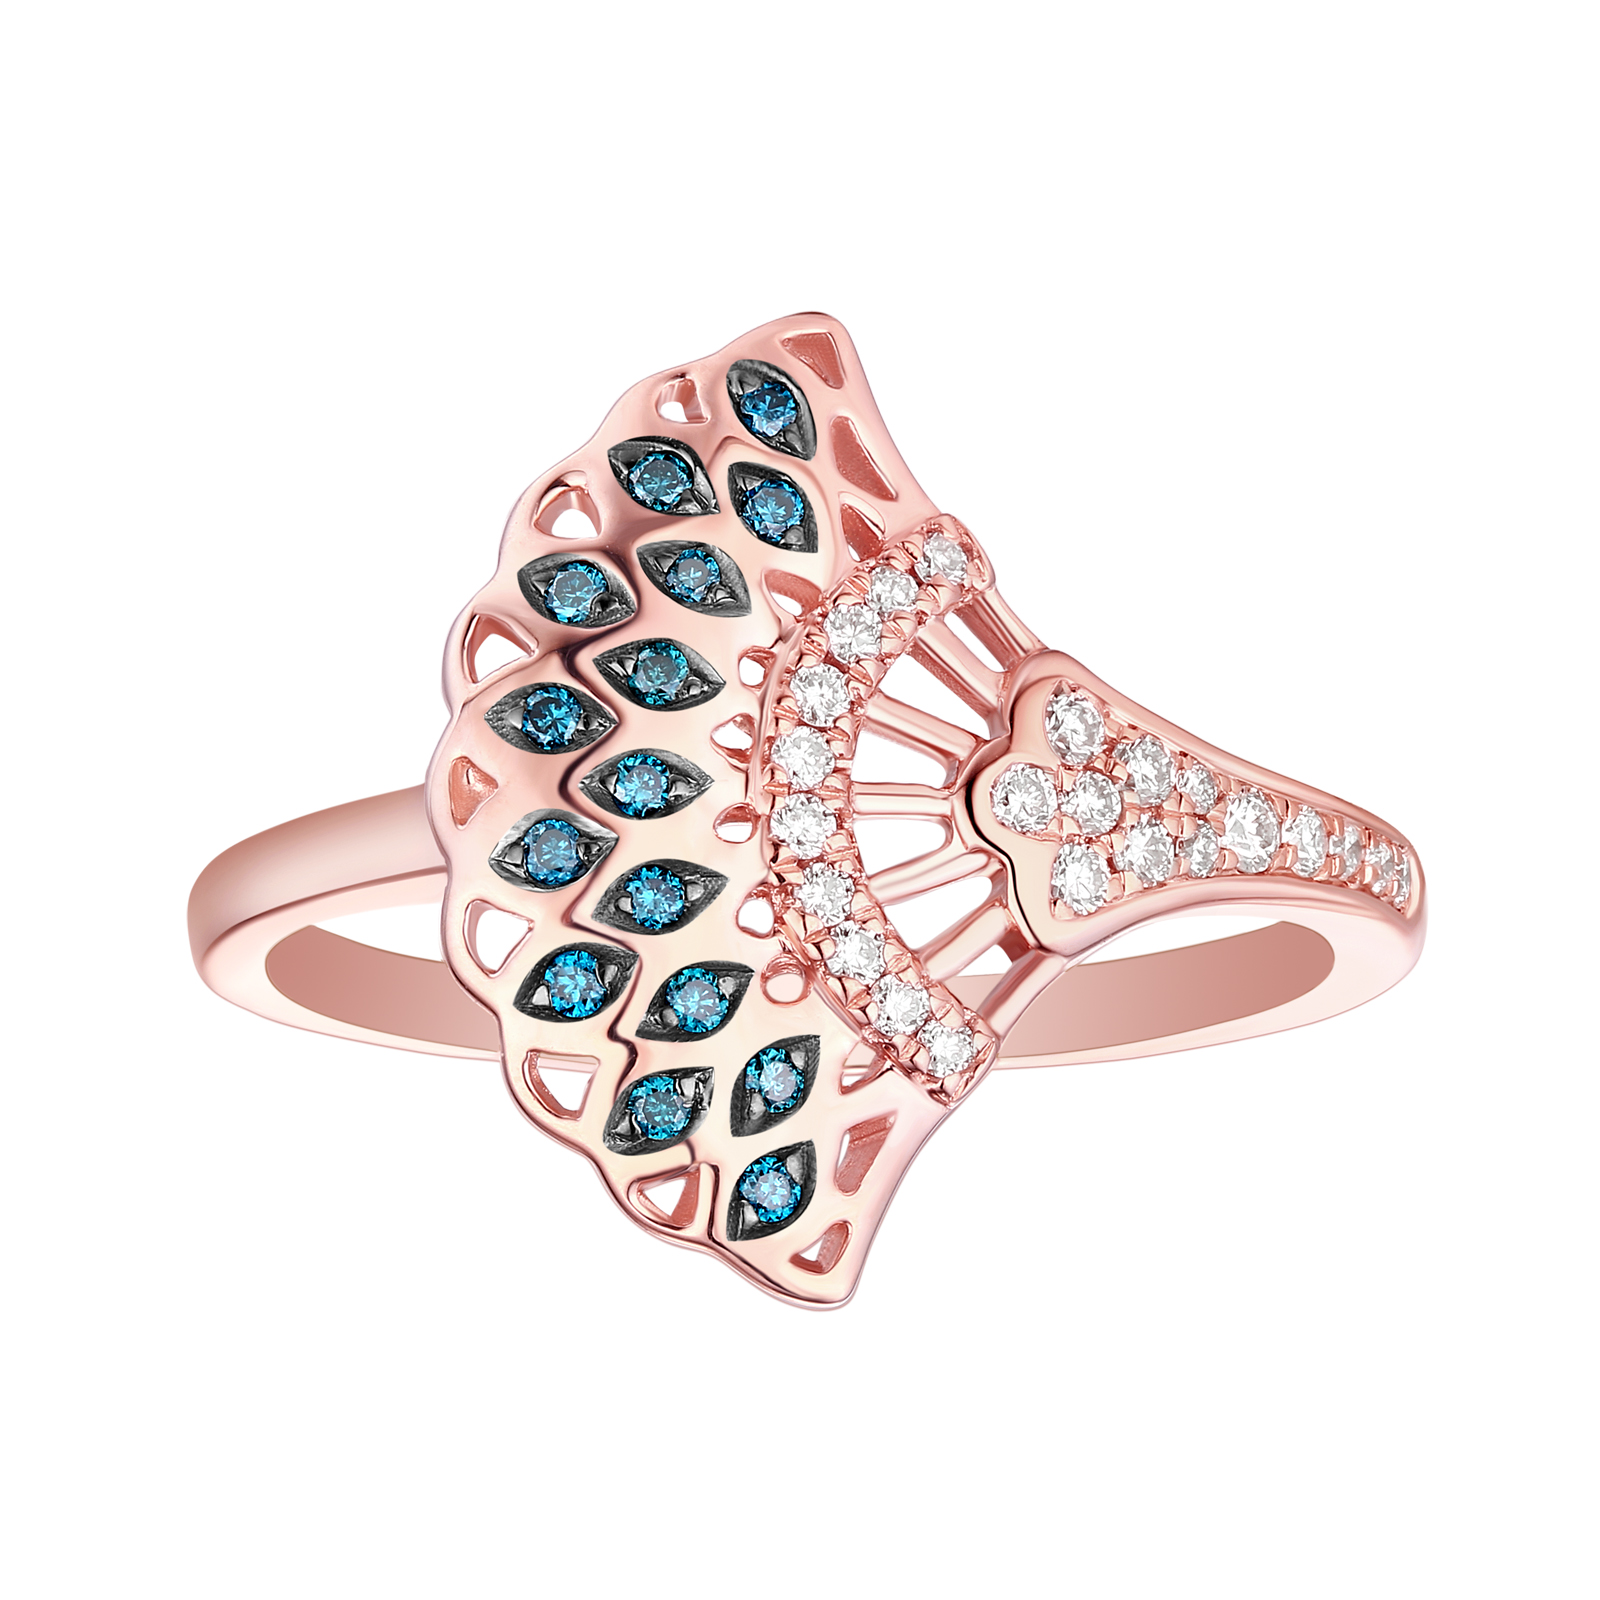 R29913BLU- 14K Rose Gold Diamond Ring, 0.20 TCW